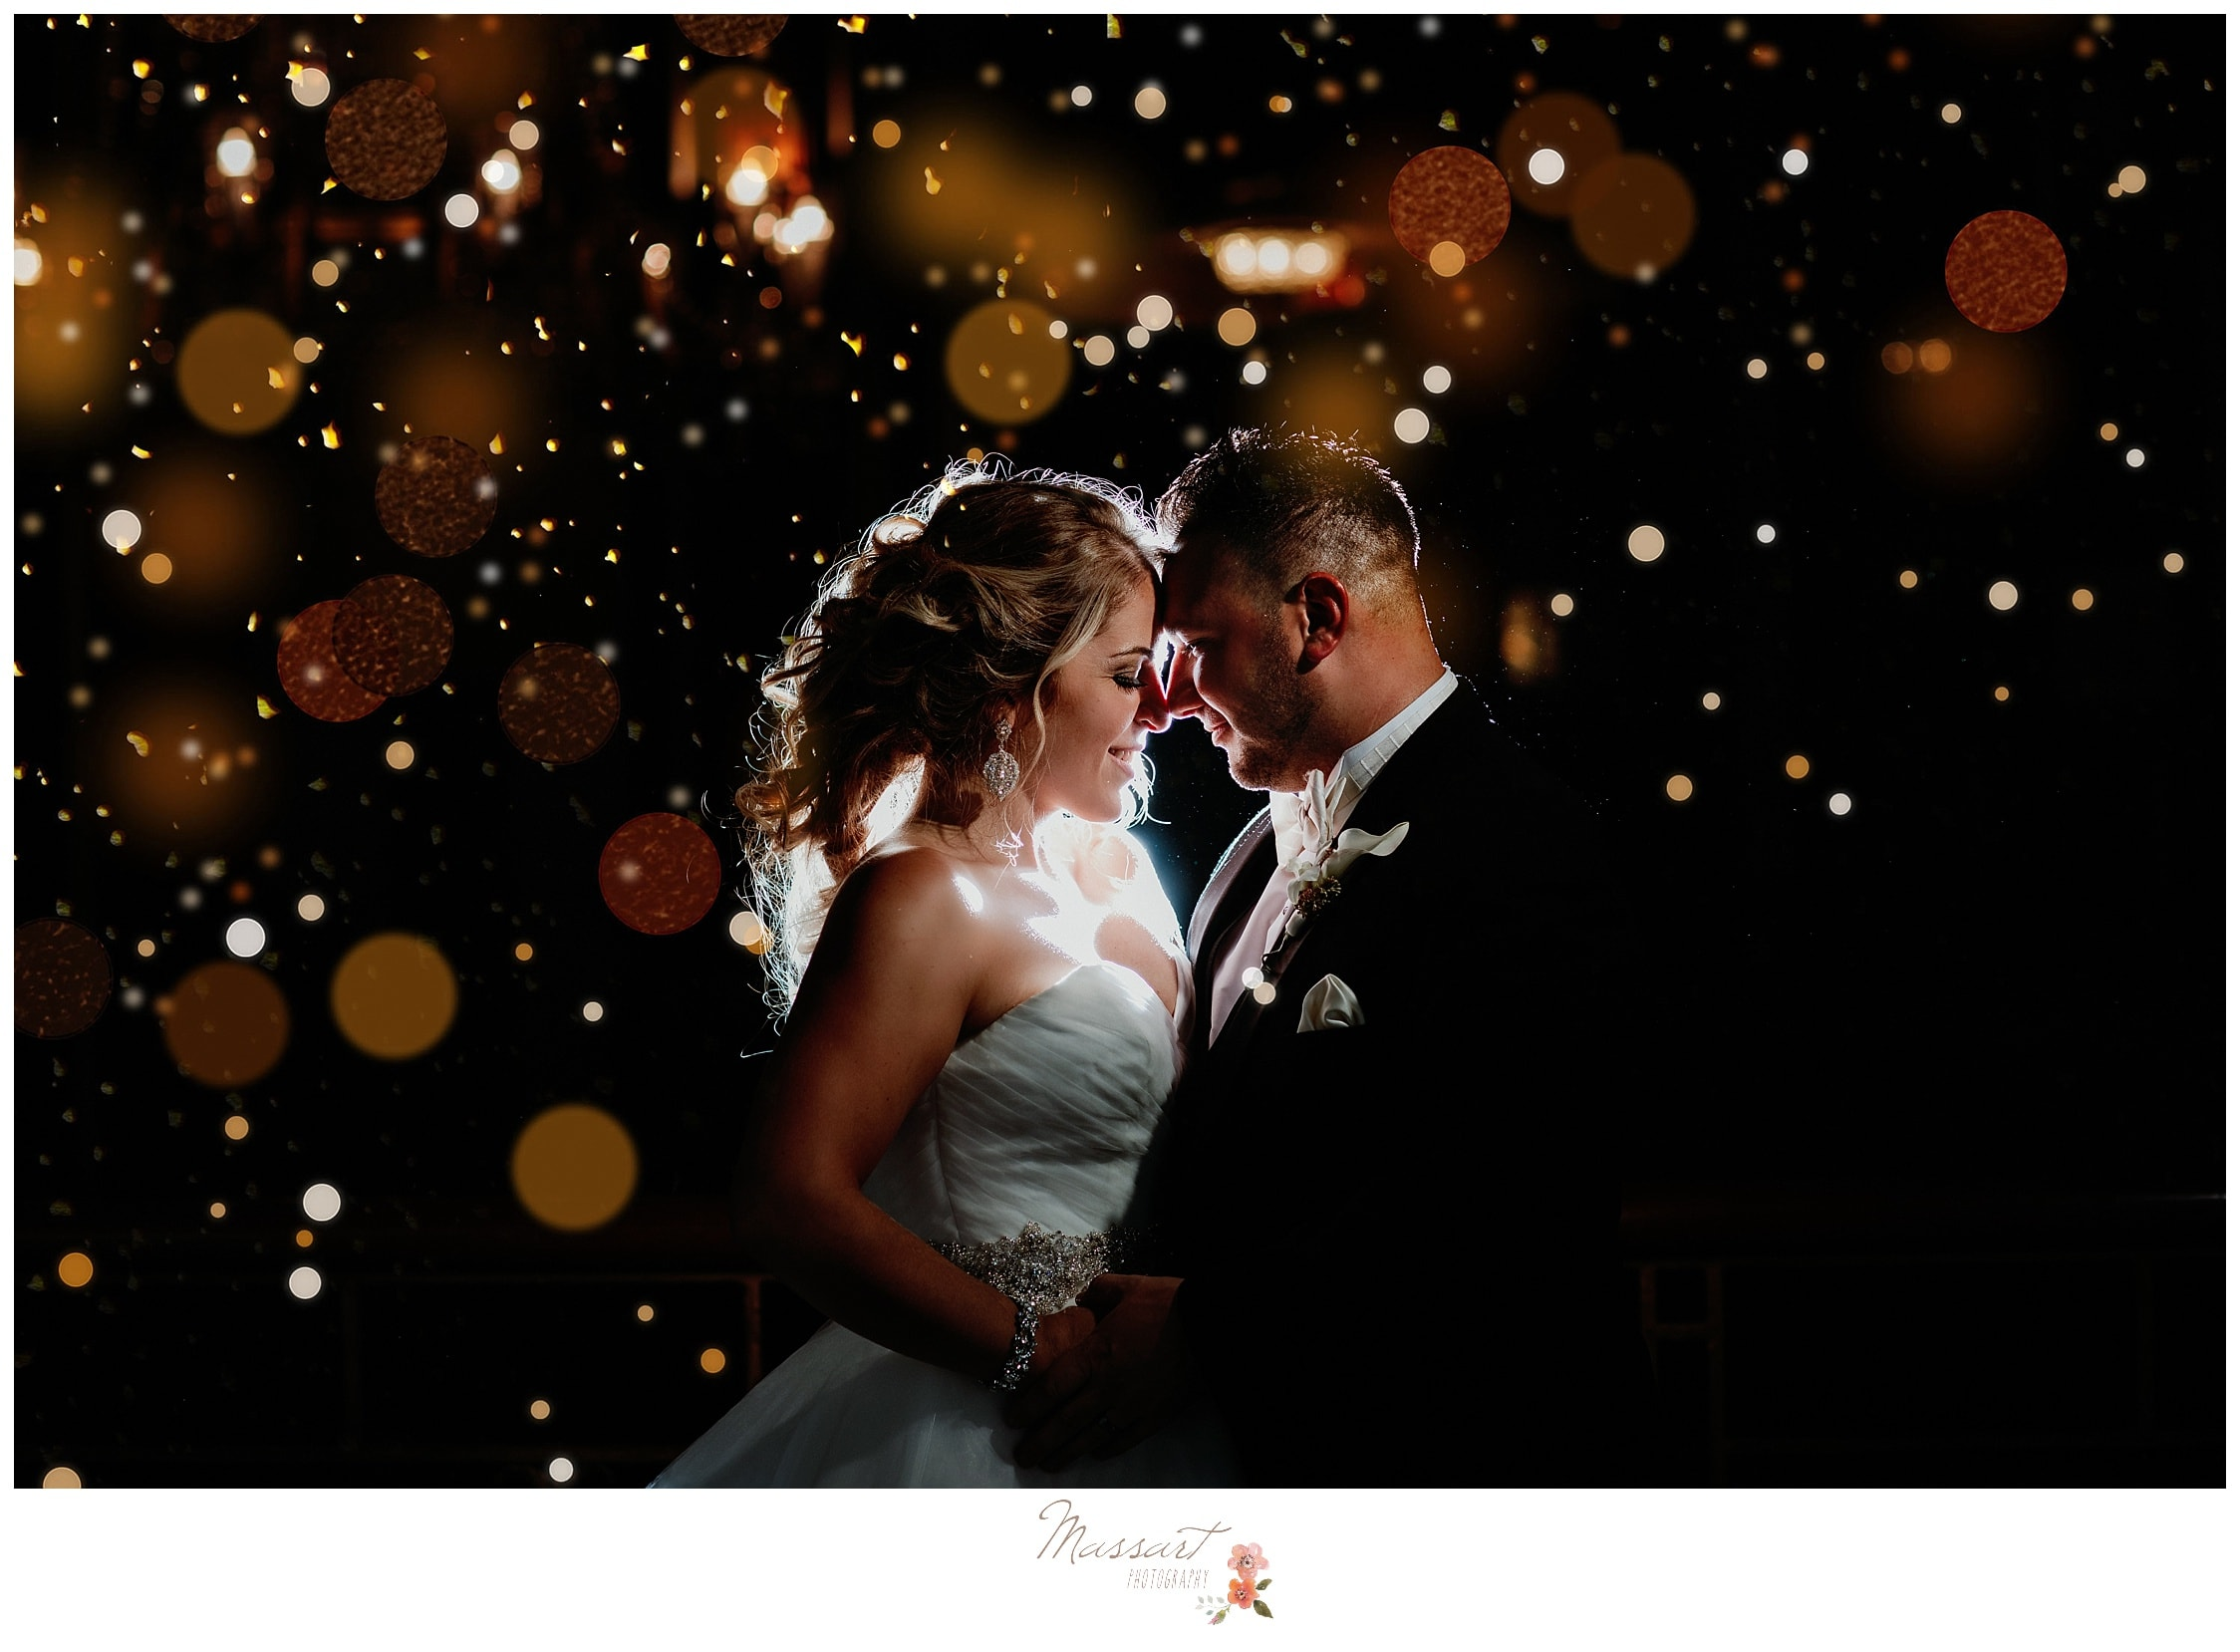 Romantic twinkly lights surround the newlyweds after their Biltmore wedding reception photographed by Massart Photography Rhode Island